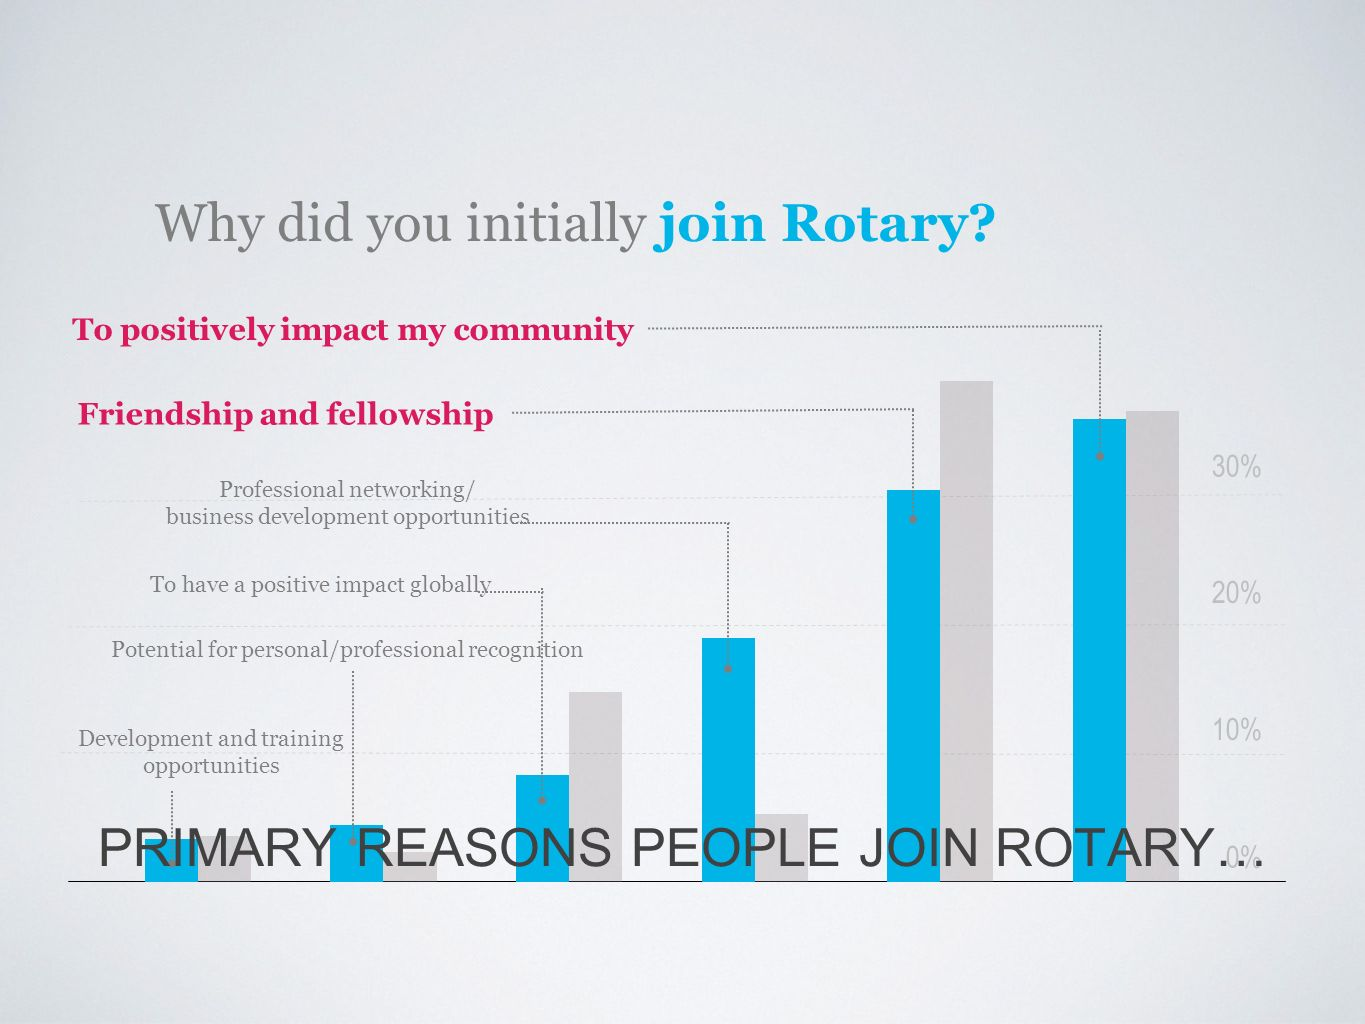 PRIMARY REASONS PEOPLE JOIN ROTARY…